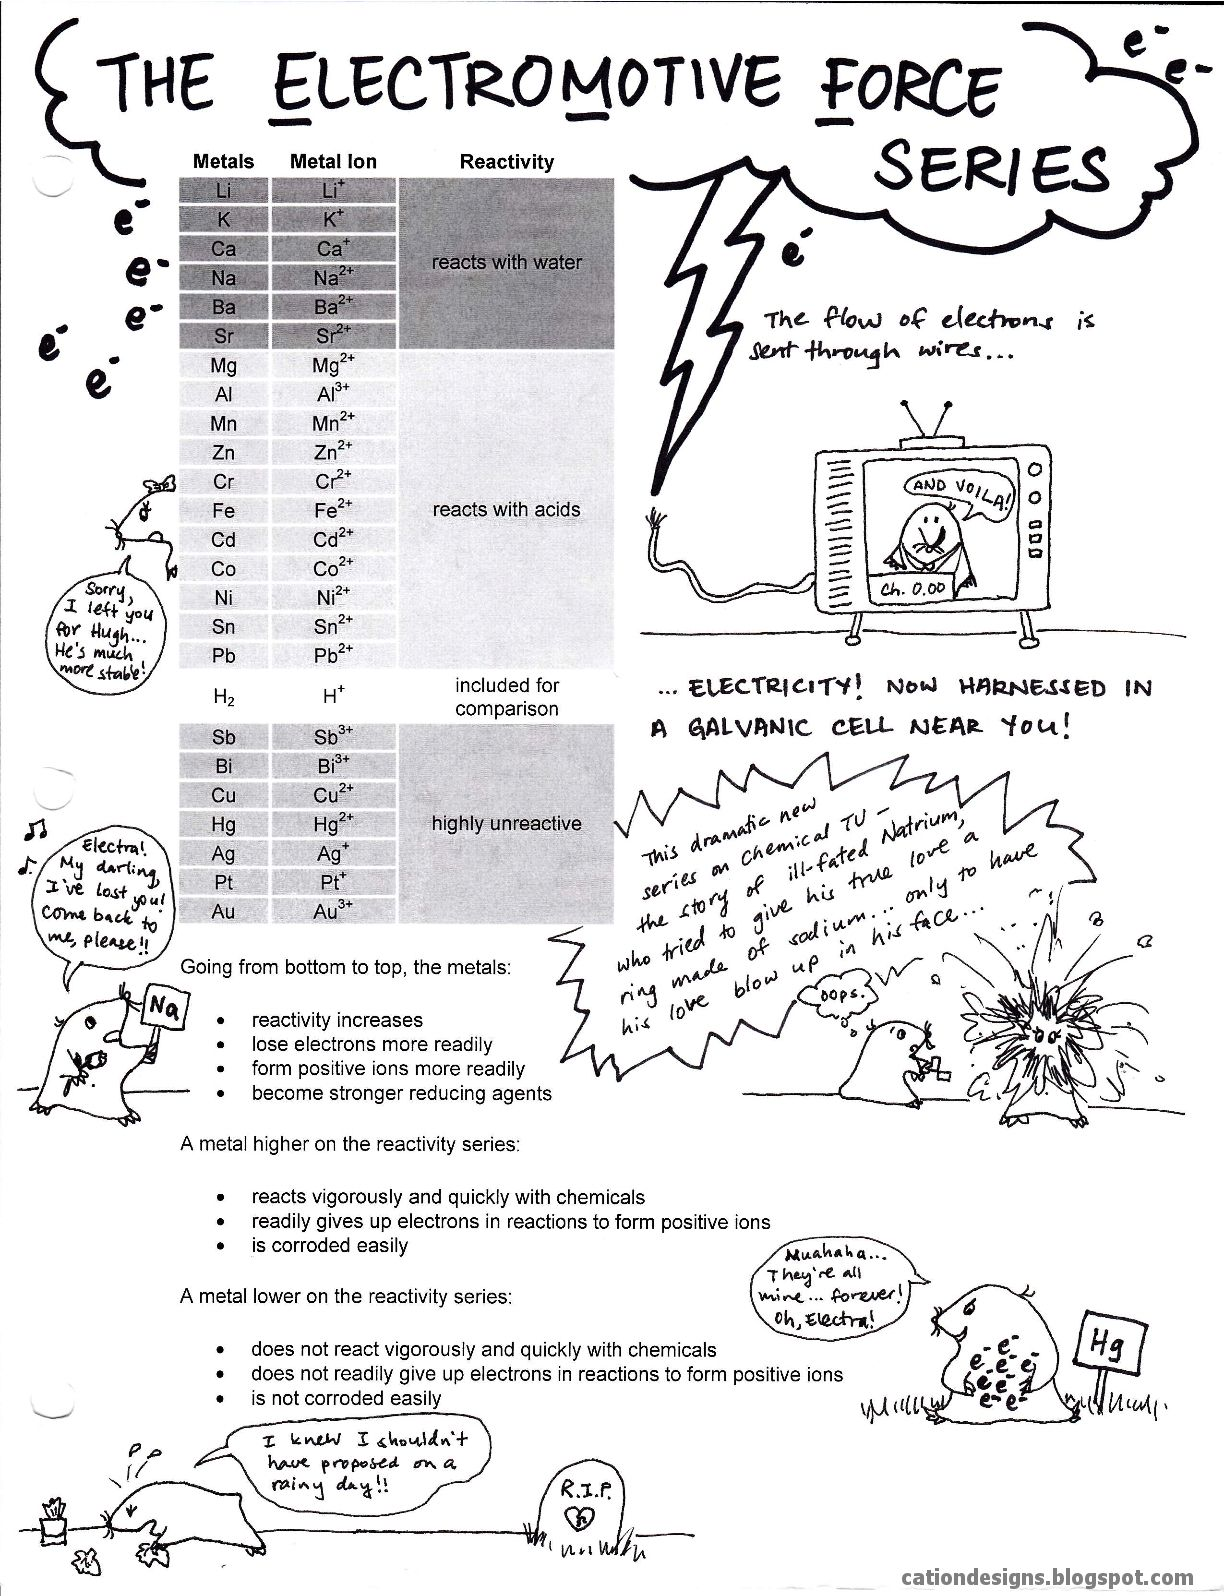 Cation Designs Numerous Chemistry And Other Science Handouts